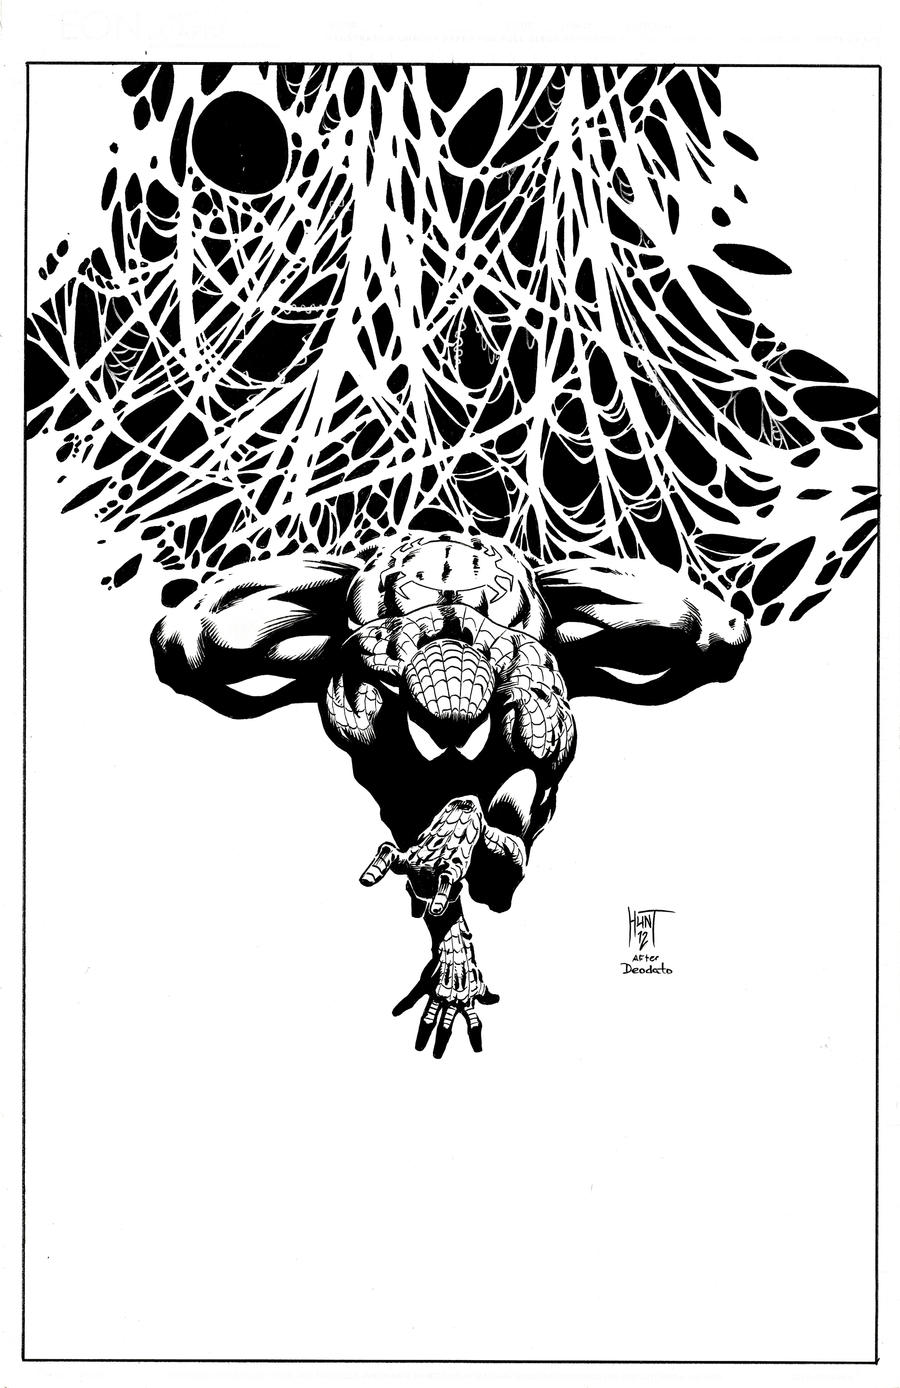 Spider-Man by KenHunt